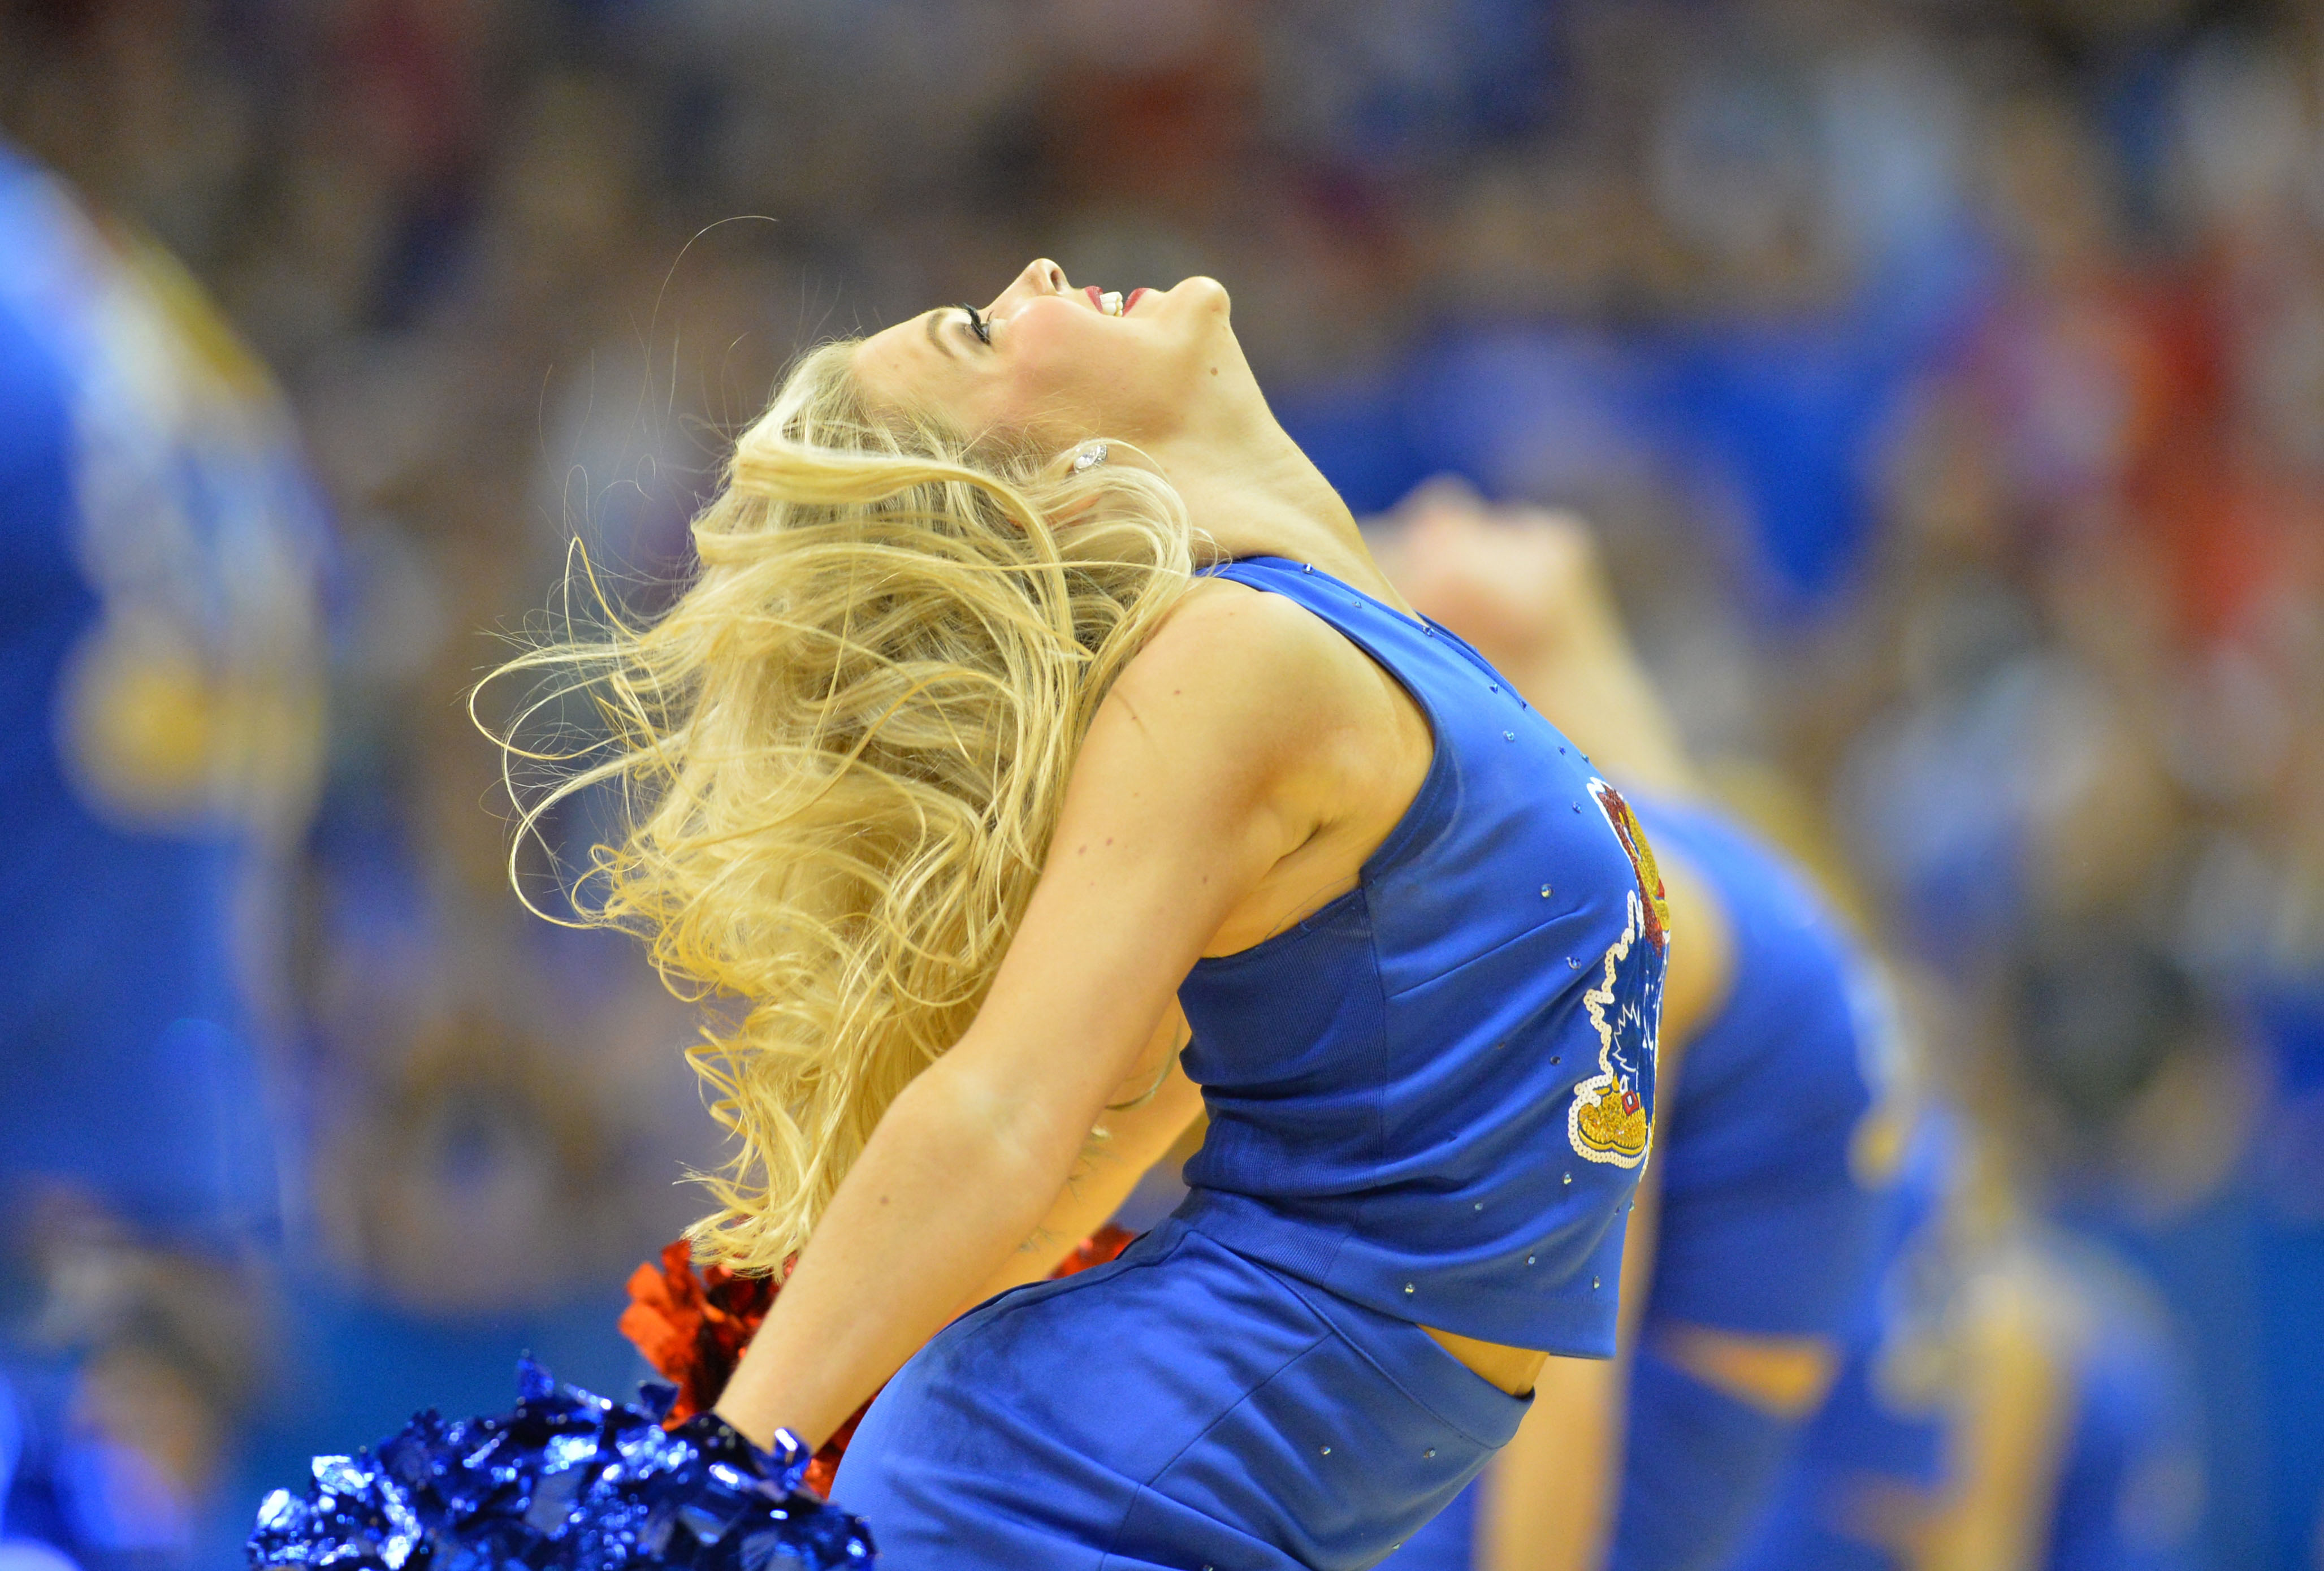 Nov 18, 2016; Lawrence, KS, USA; Kansas Jayhawks cheerleaders entertain fans during the second half against the Siena Saints at Allen Fieldhouse. Kansas won 86-65. Mandatory Credit: Denny Medley-USA TODAY Sports